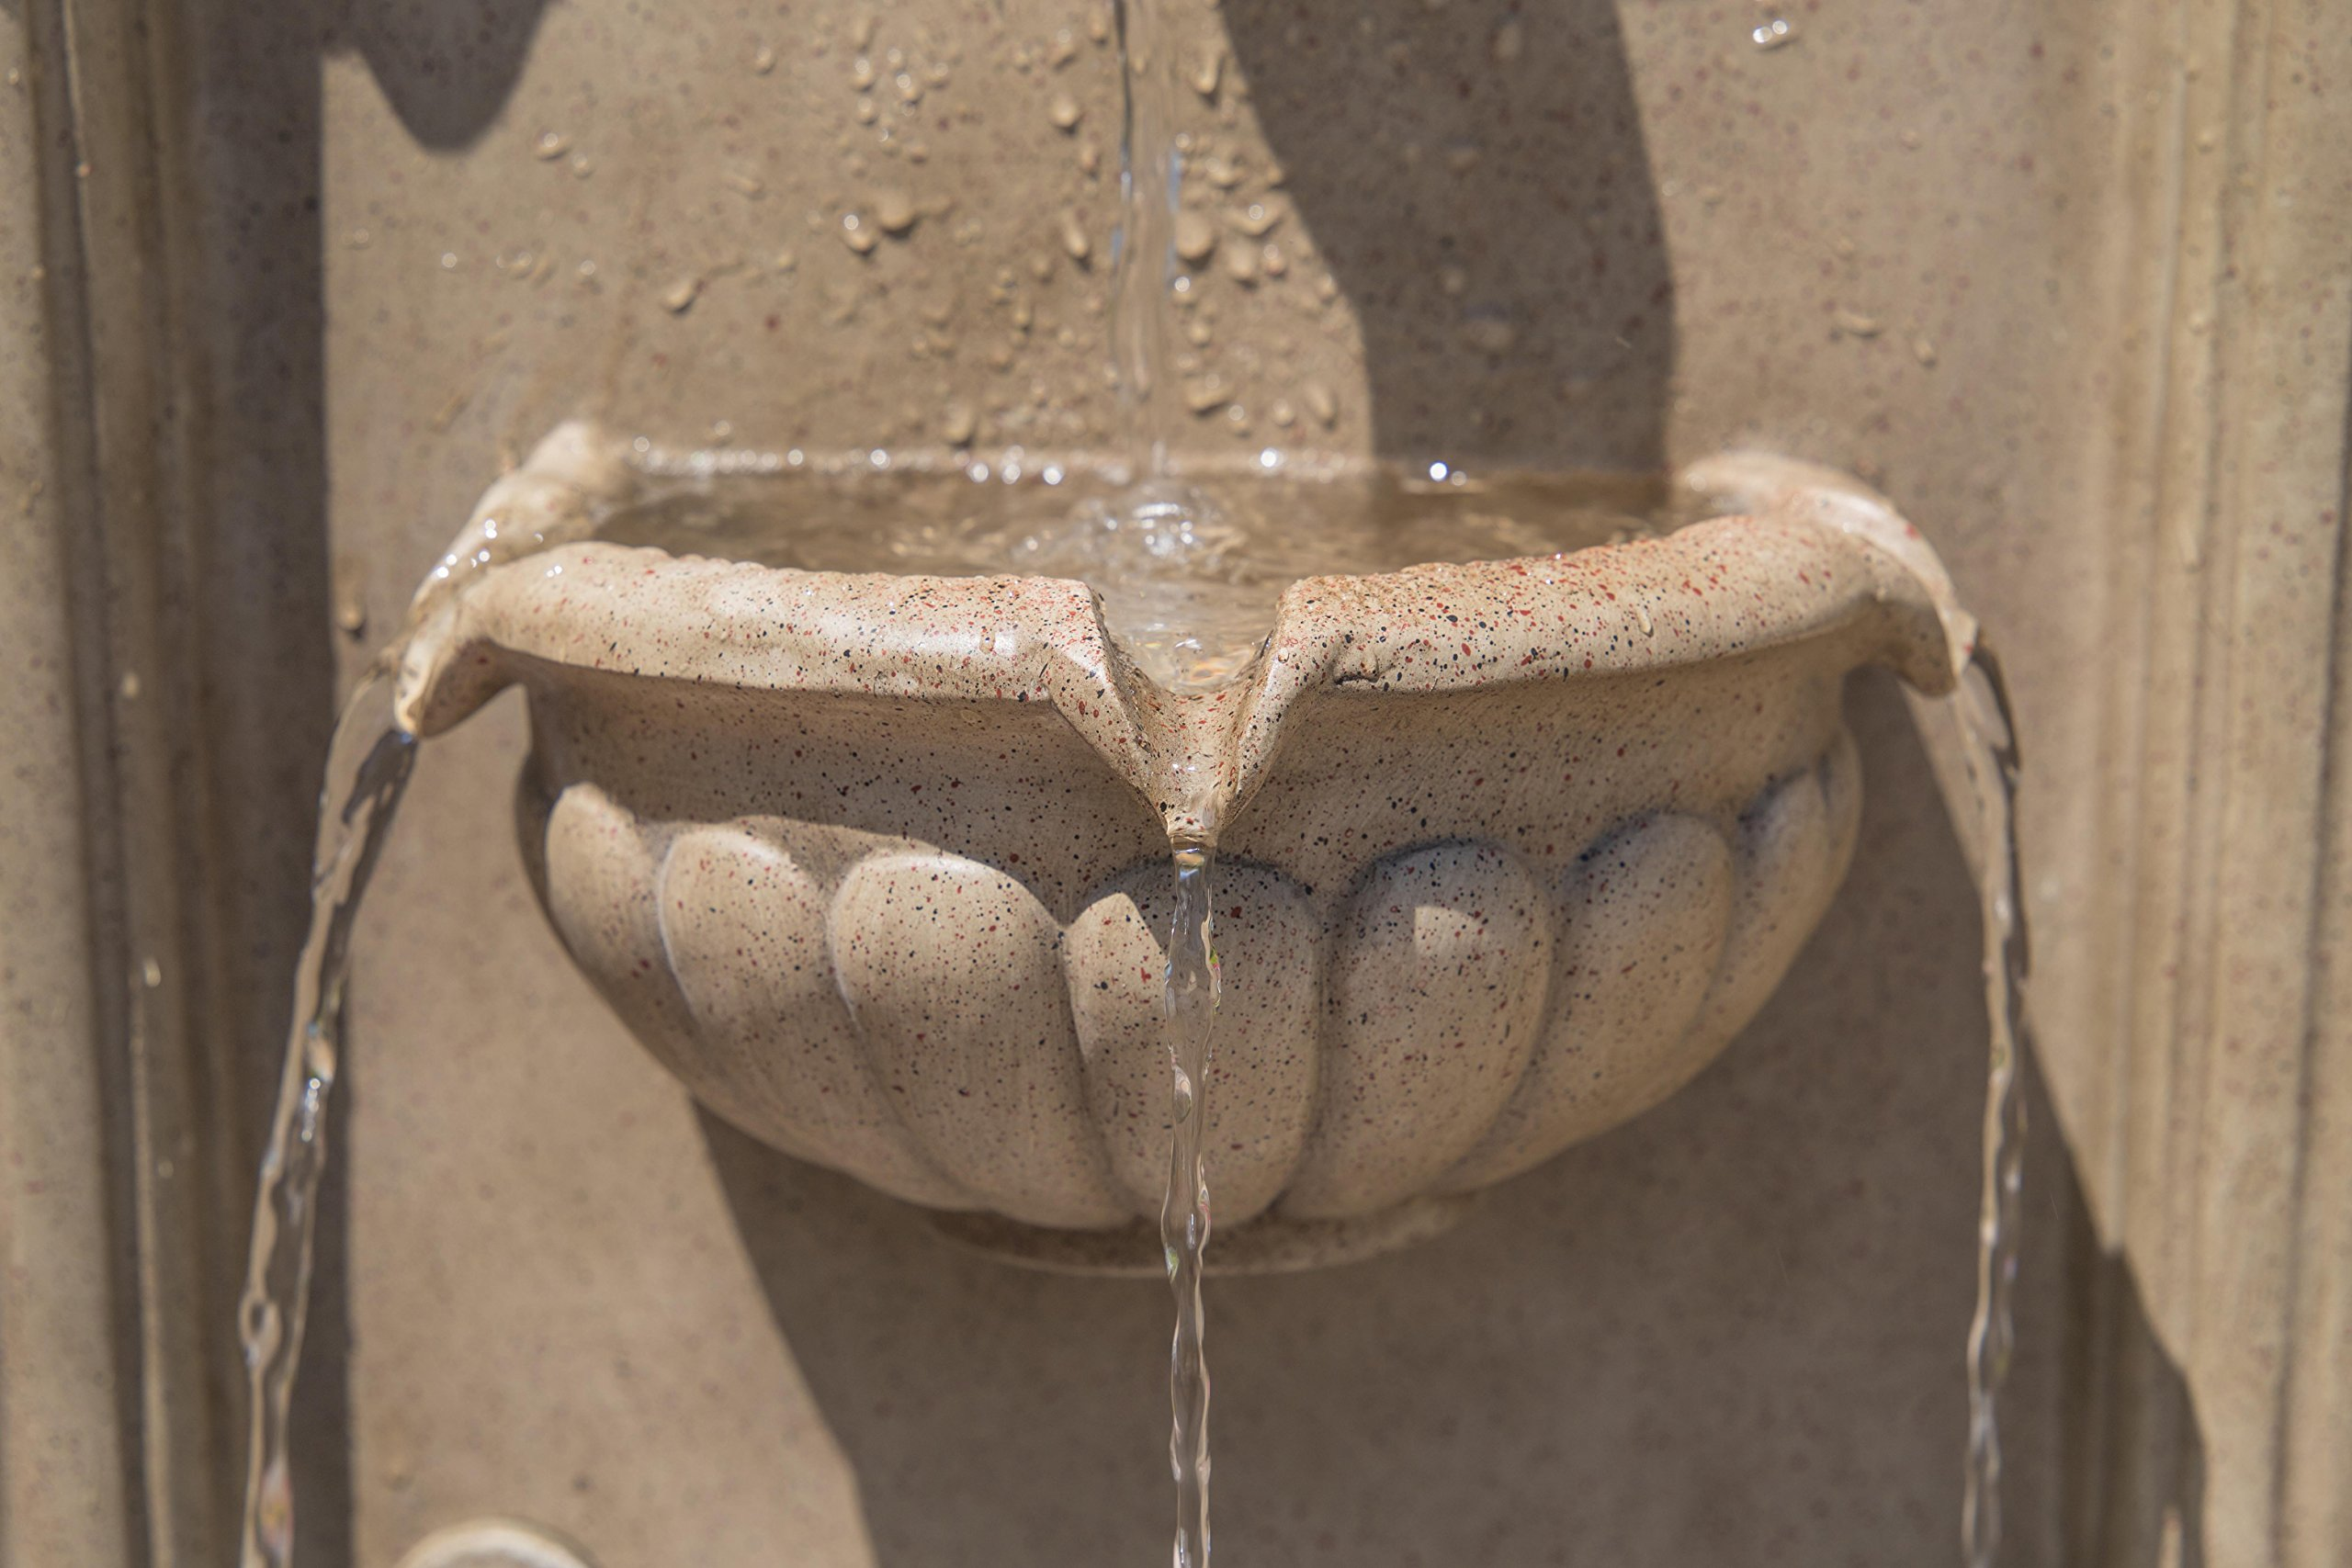 Kenroy Home 51043SNDST Royal Wall Fountain with Light, Sandstone Finish by Kenroy Home (Image #5)